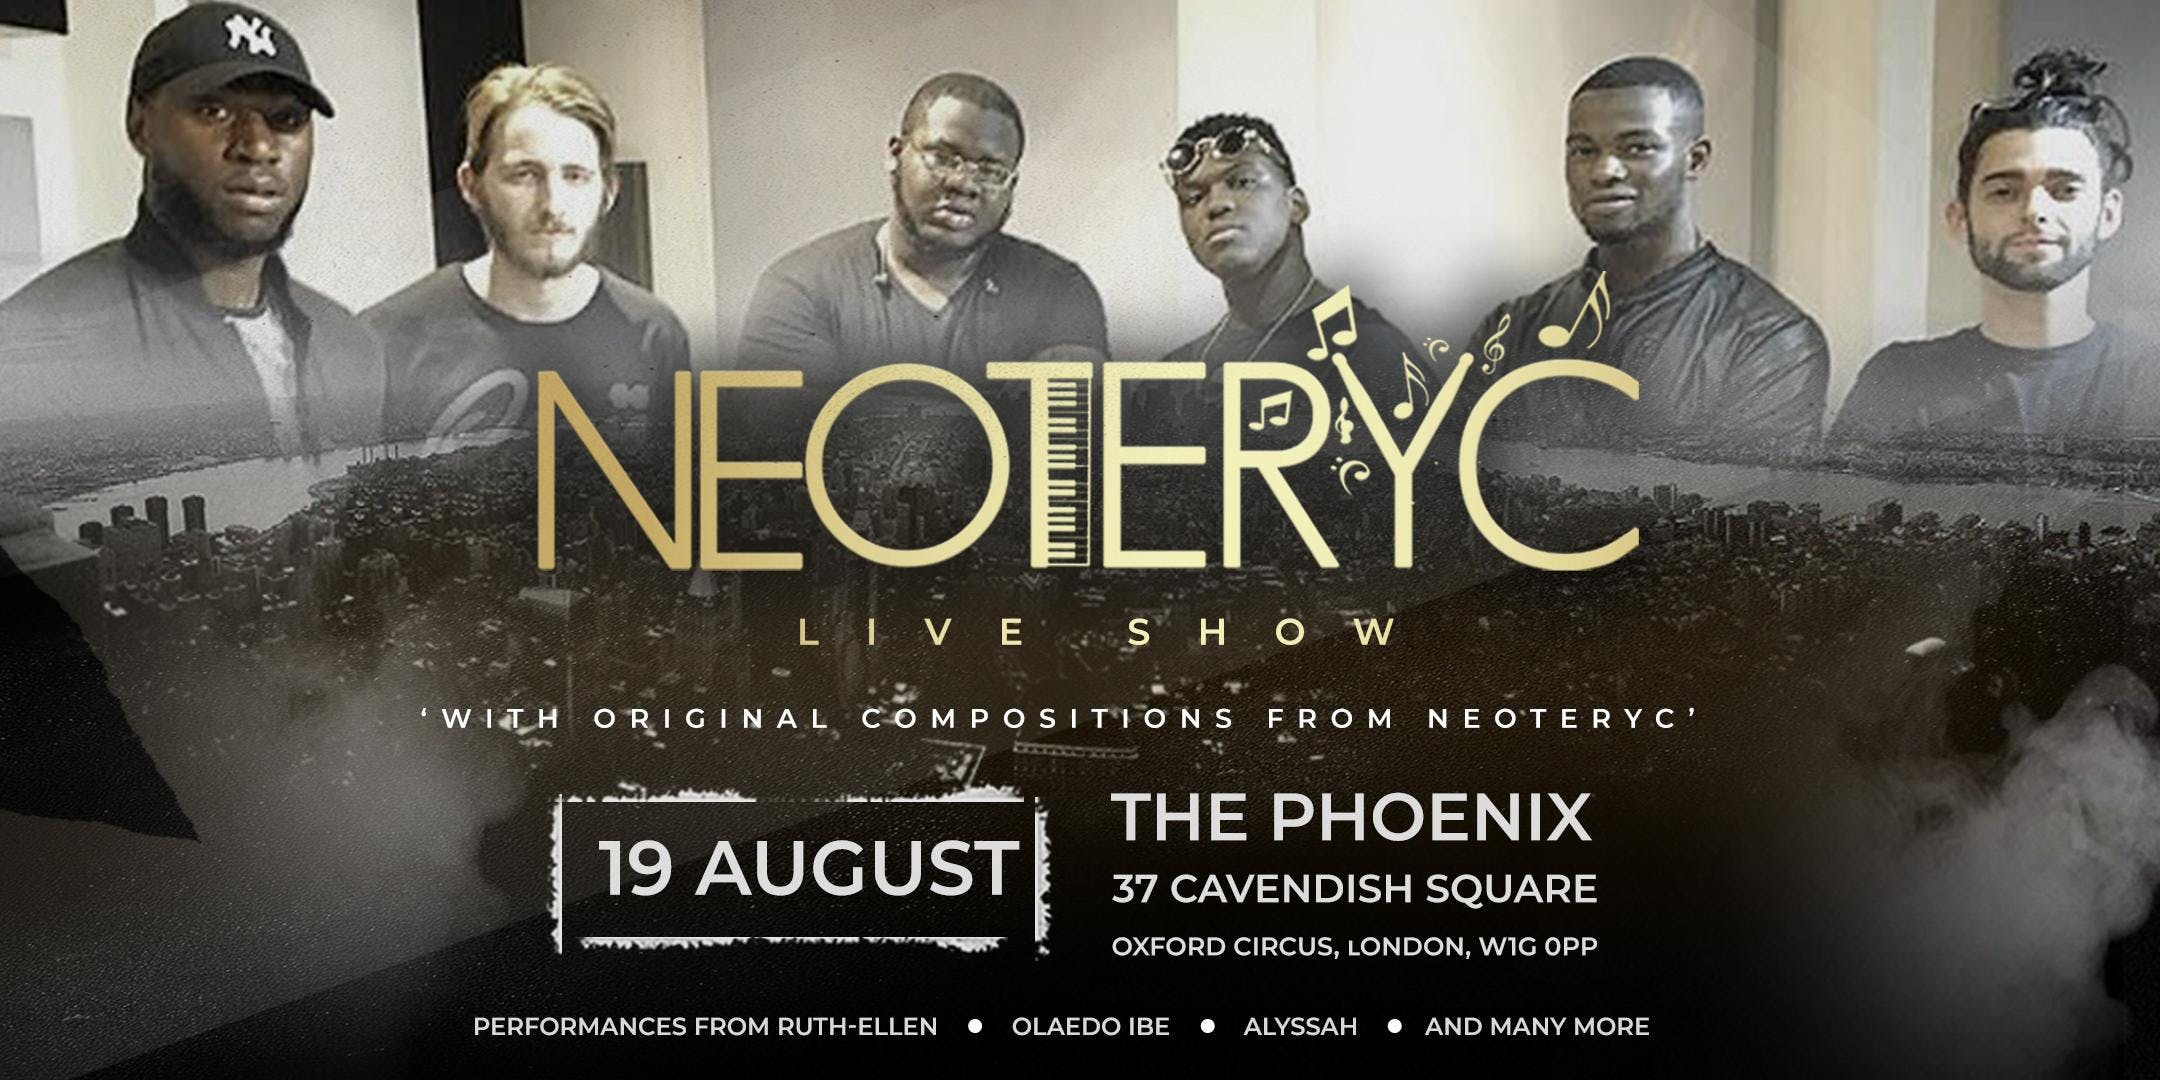 NEOTERYC LIVE SHOW